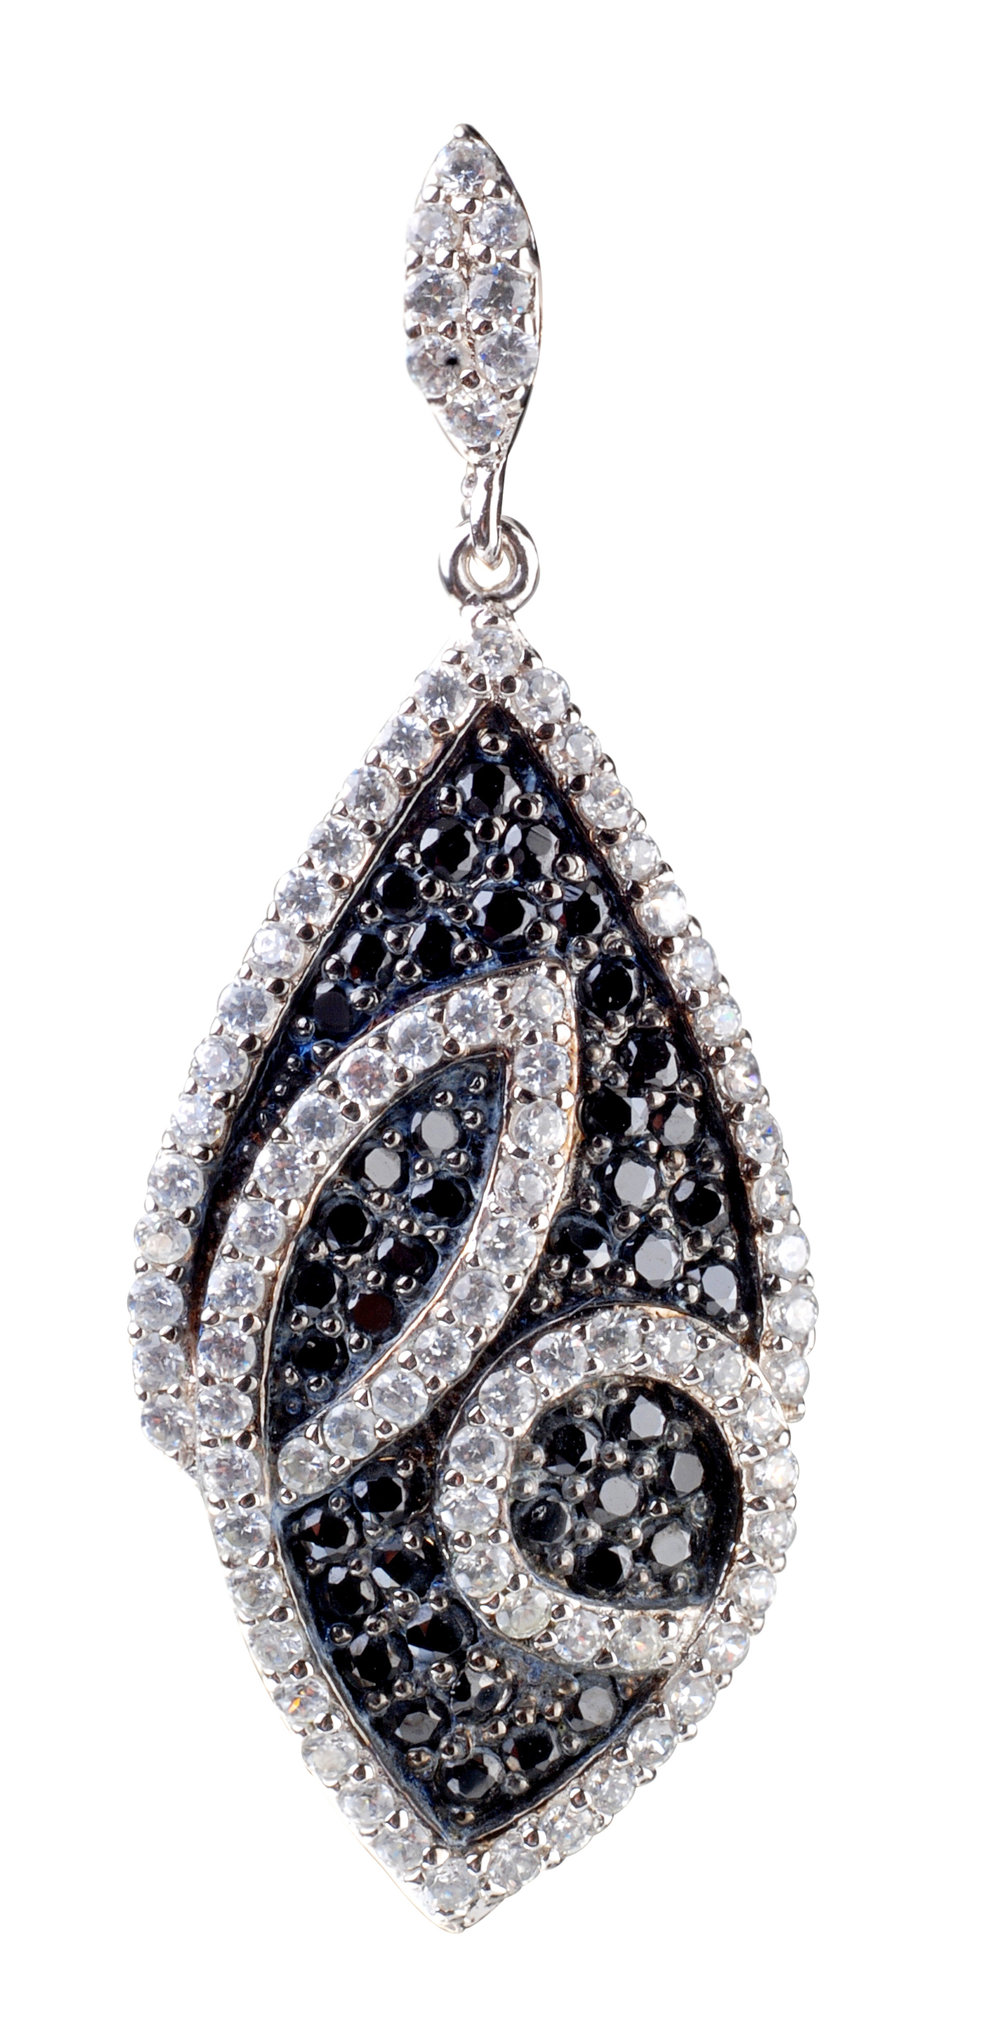 chong chong strong jewel black and white earring pendant jewelry.jpg